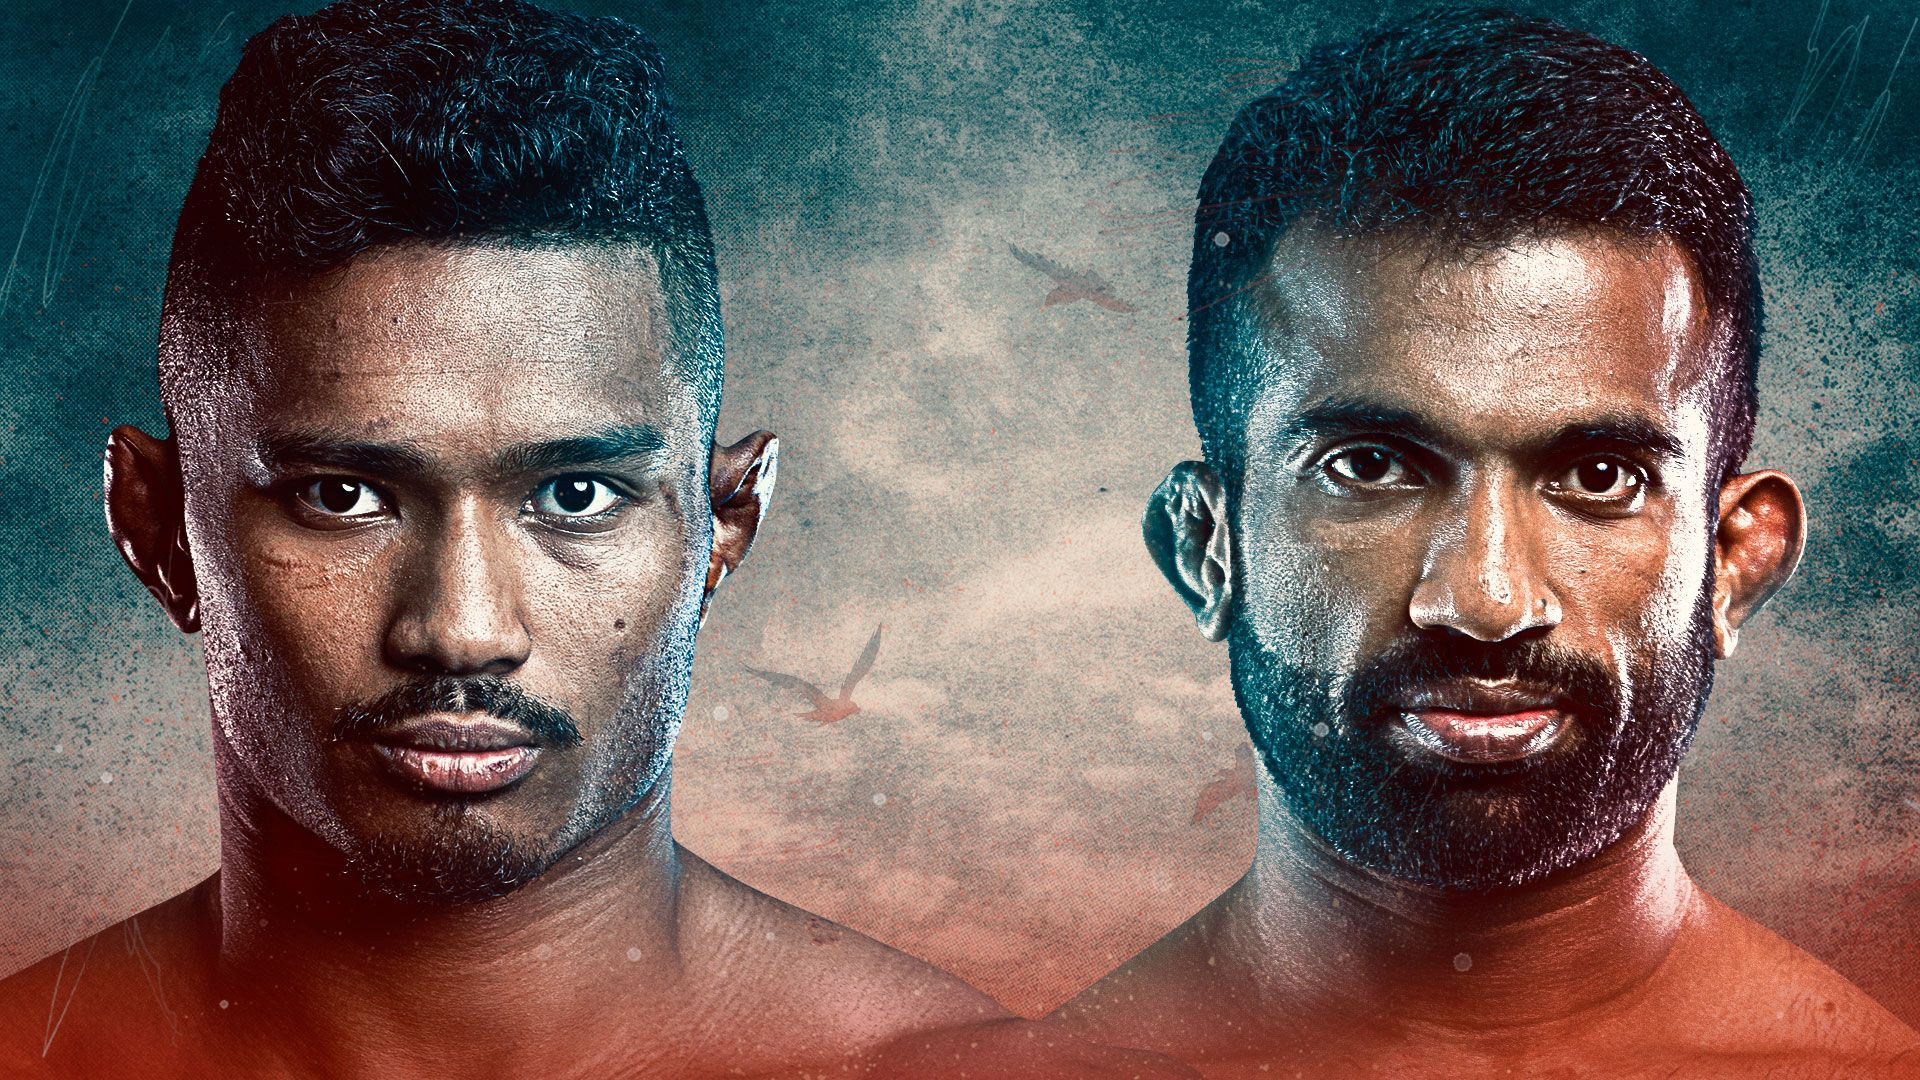 Amir Khan fights Rahul Raju at ONE: REIGN OF DYNASTIES